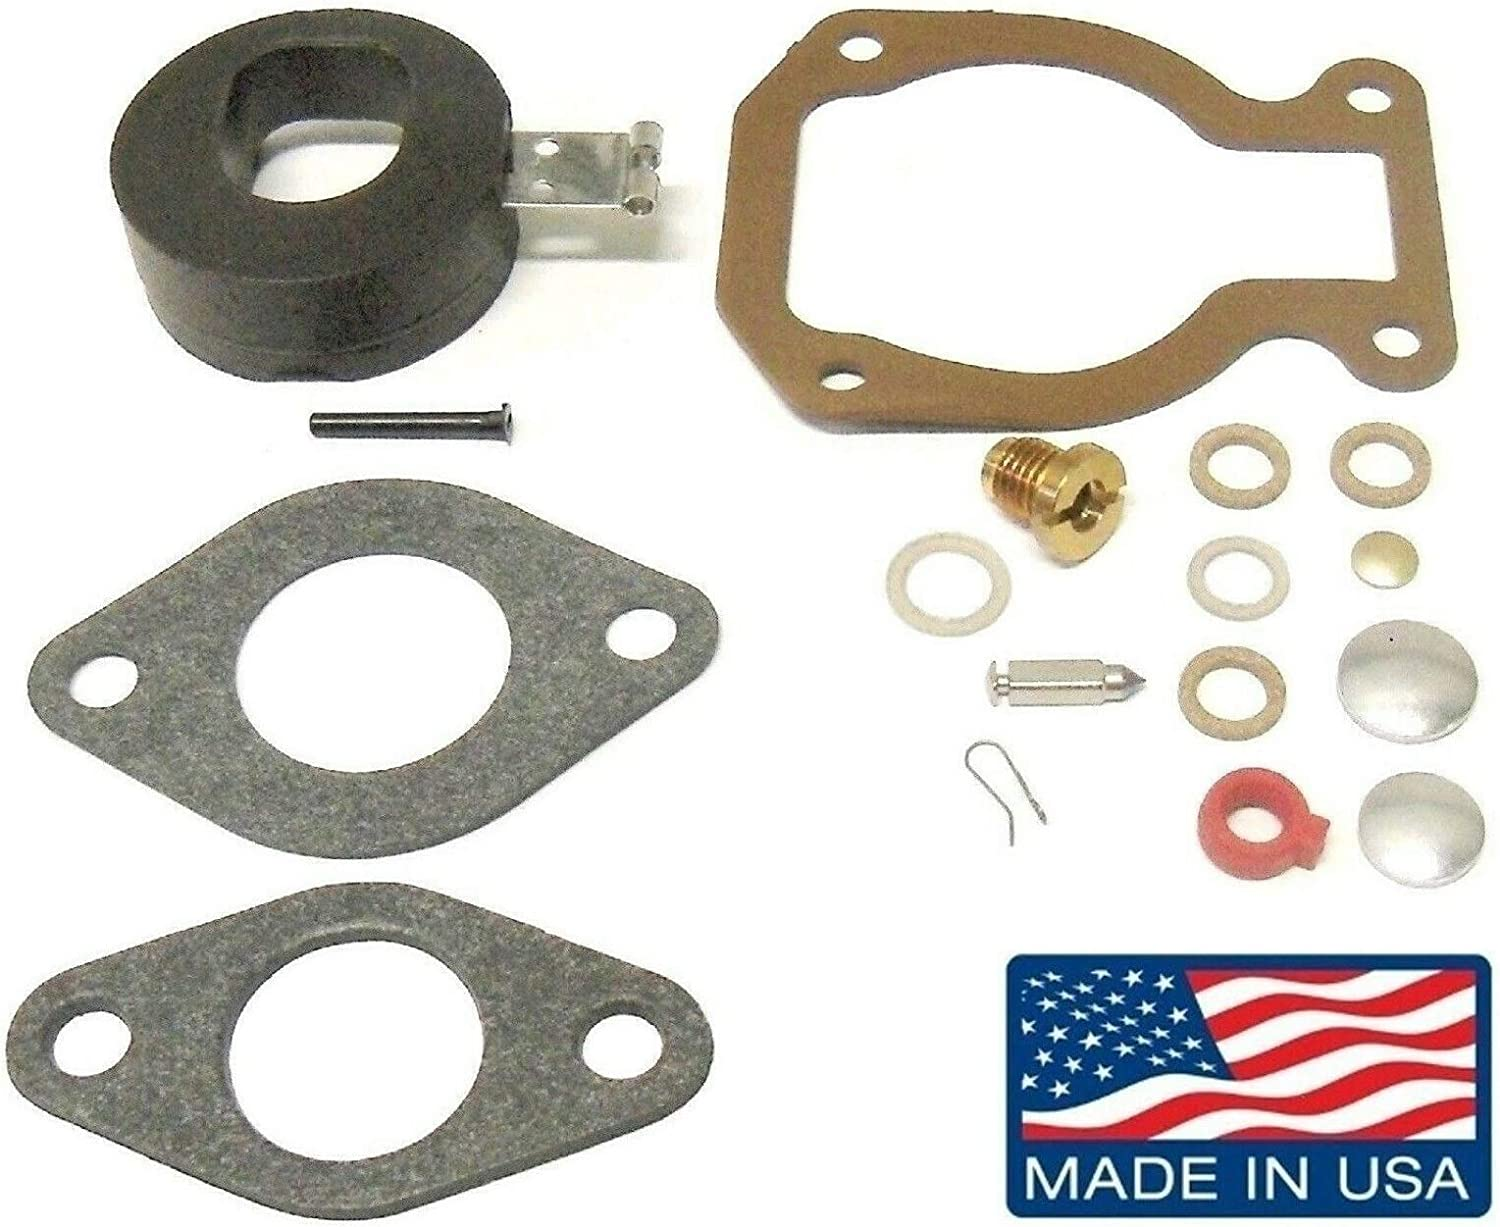 Carburetor Kit Made in USA with Float for Johnson Evinrude 4, 4.5, 5, 6 7.5 8 9.5 15 Hp 1974-1988 398452 18-7223 Please Read Product Description for Exact Applications